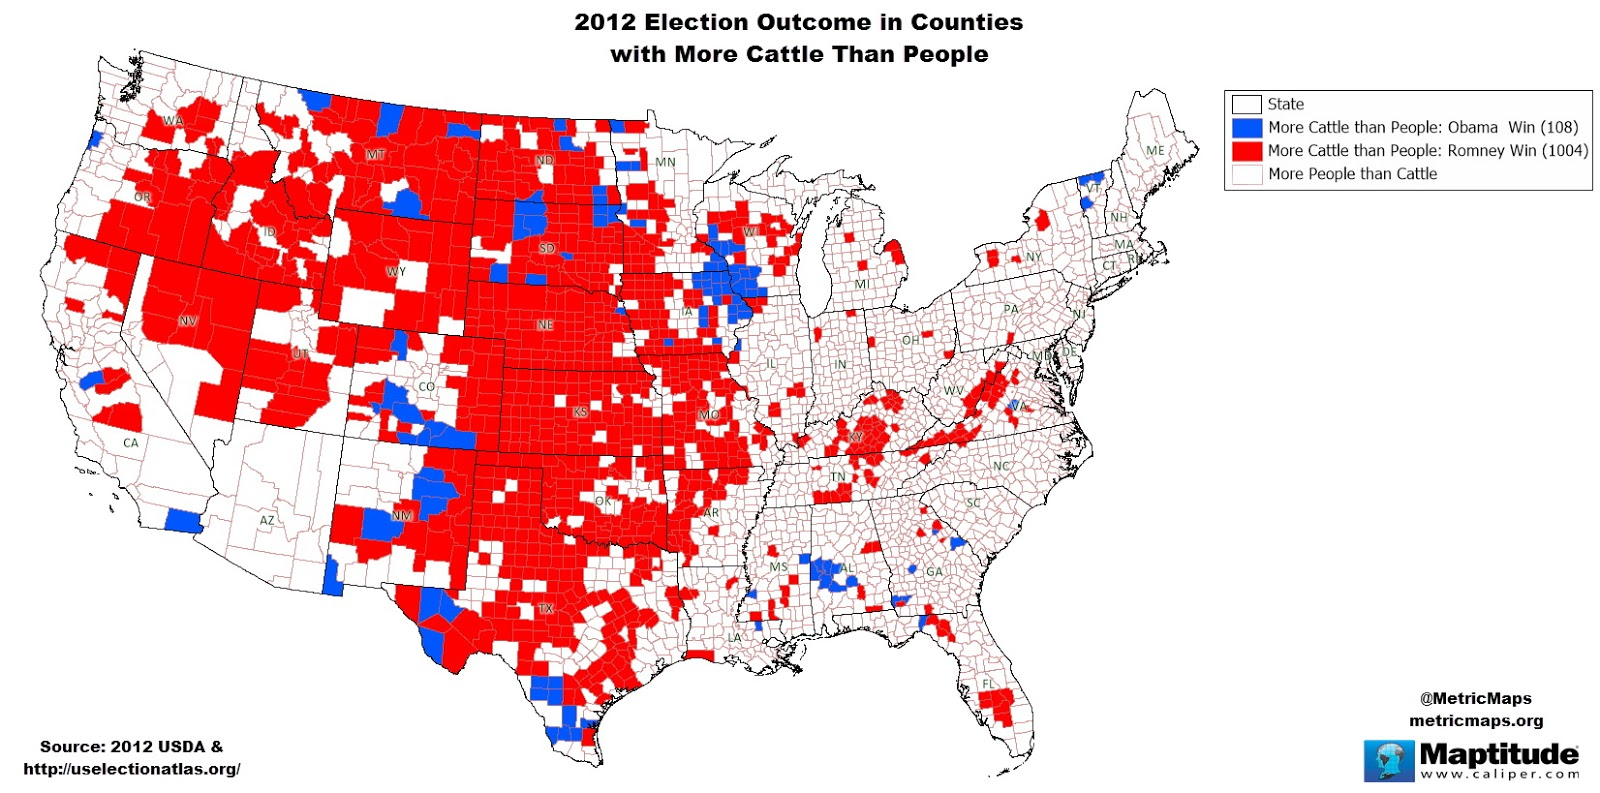 Counties with more cattle than people